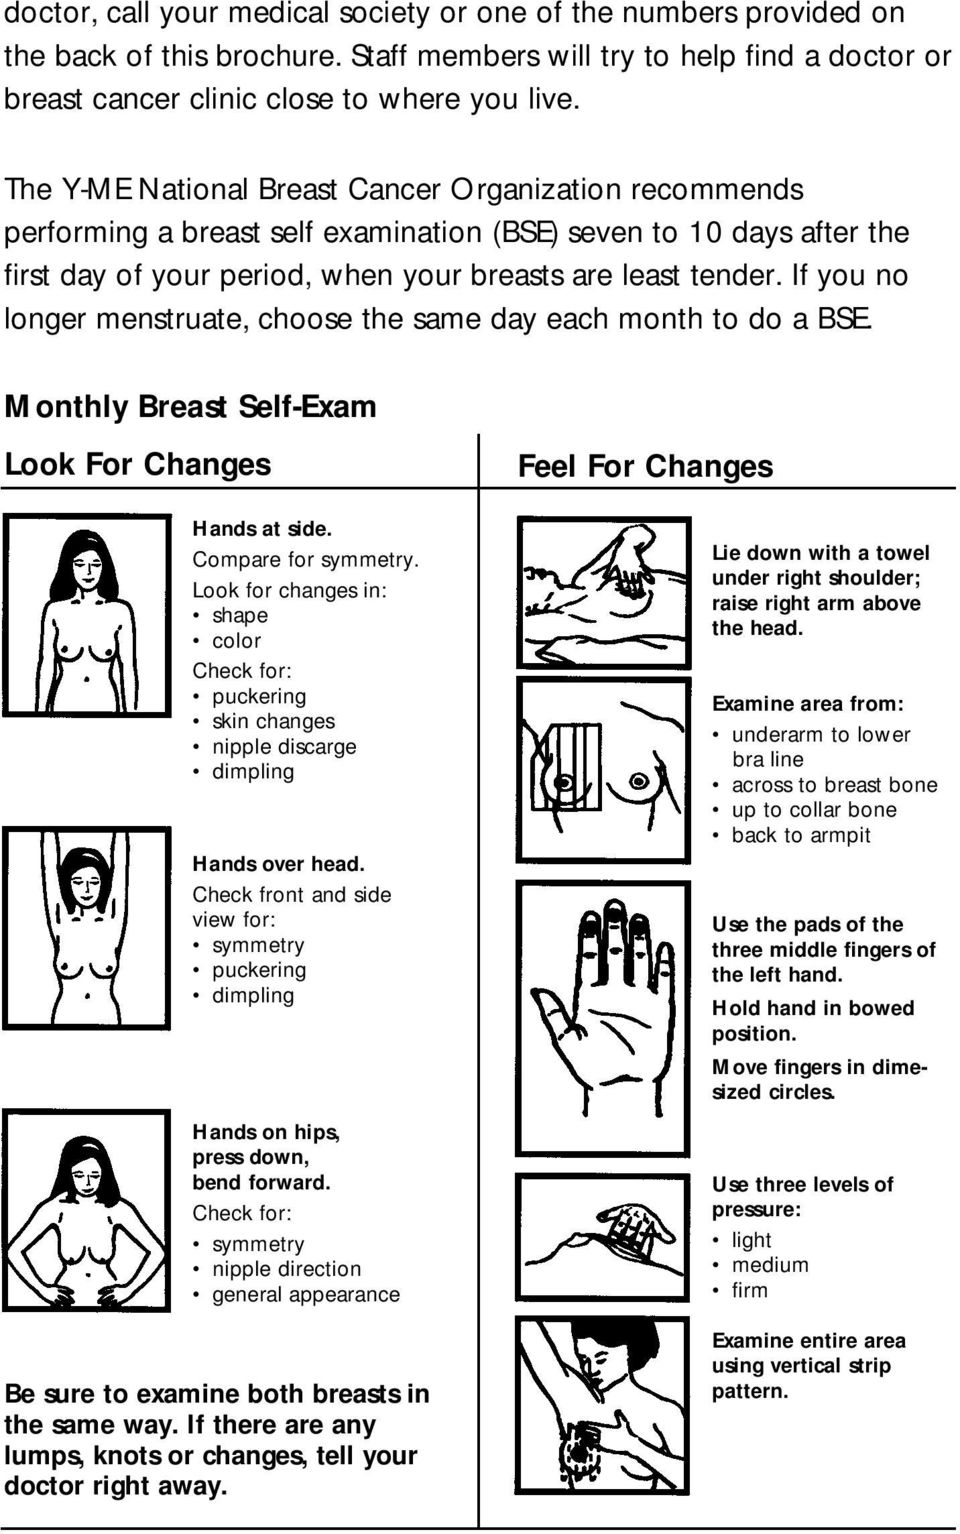 If you no longer menstruate, choose the same day each month to do a BSE. Monthly Breast Self-Exam Look For Changes Hands at side. Compare for symmetry.